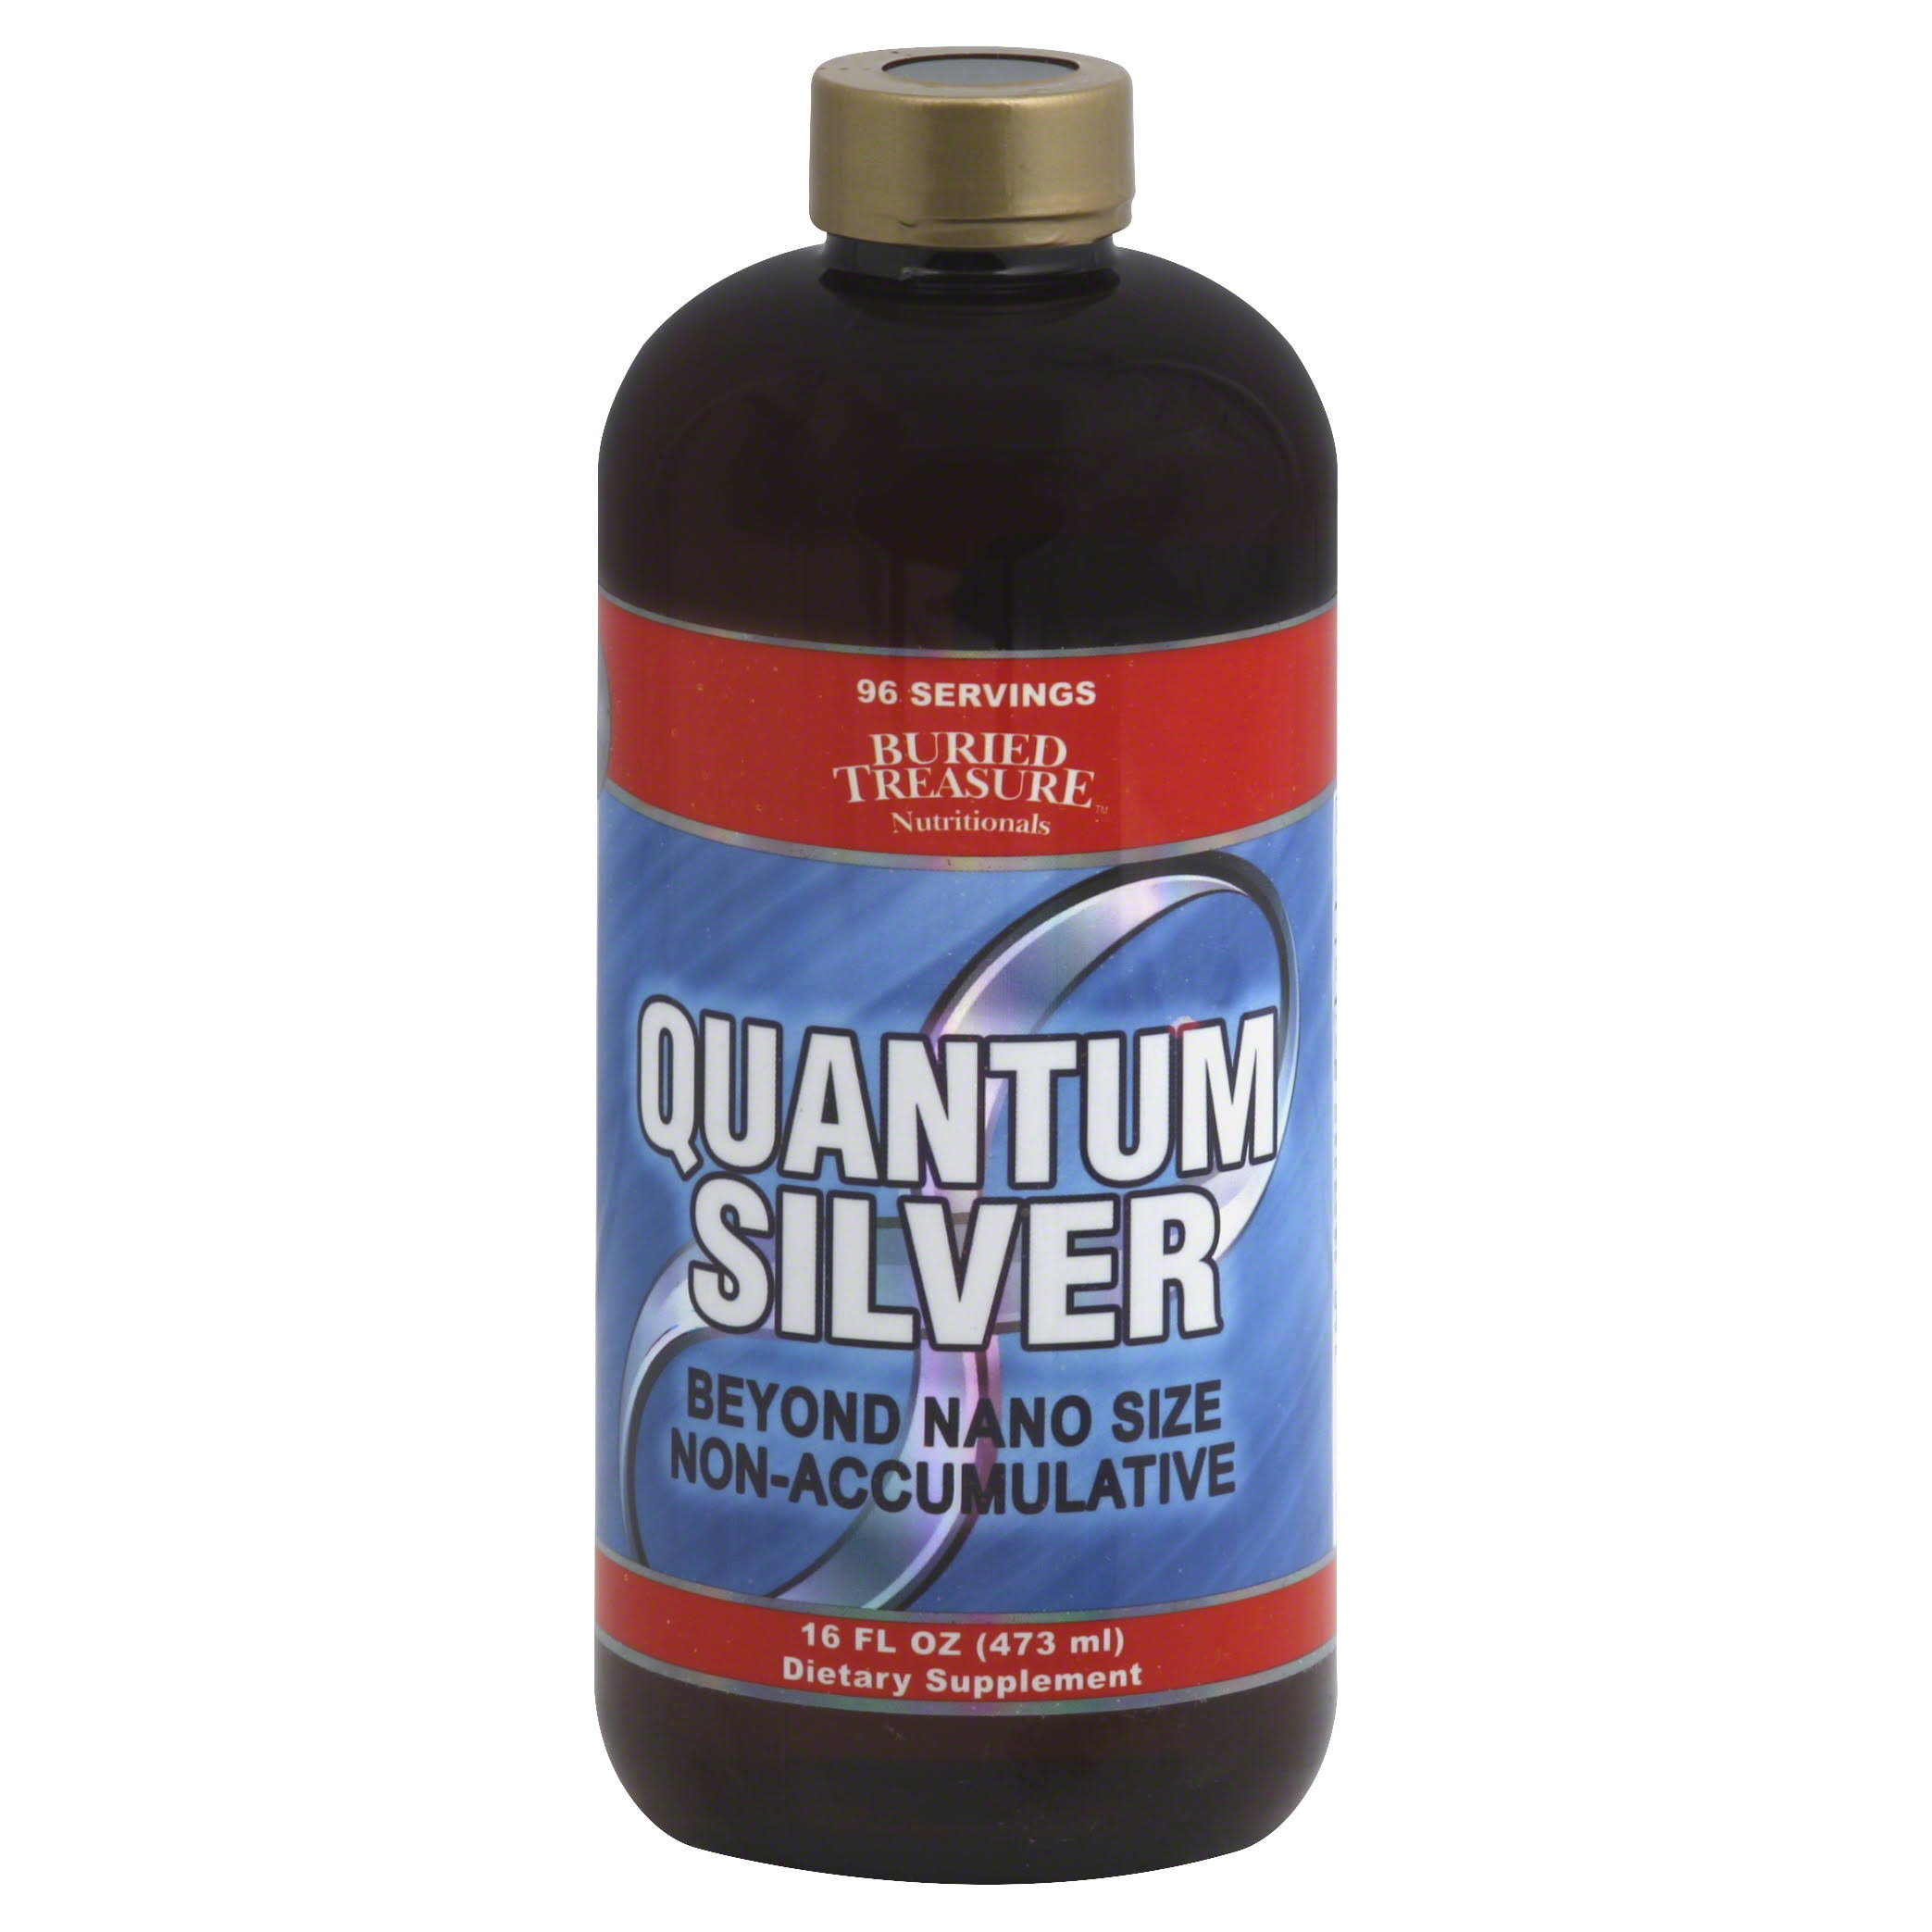 Buried Treasure Quantum Silver - 16fl oz